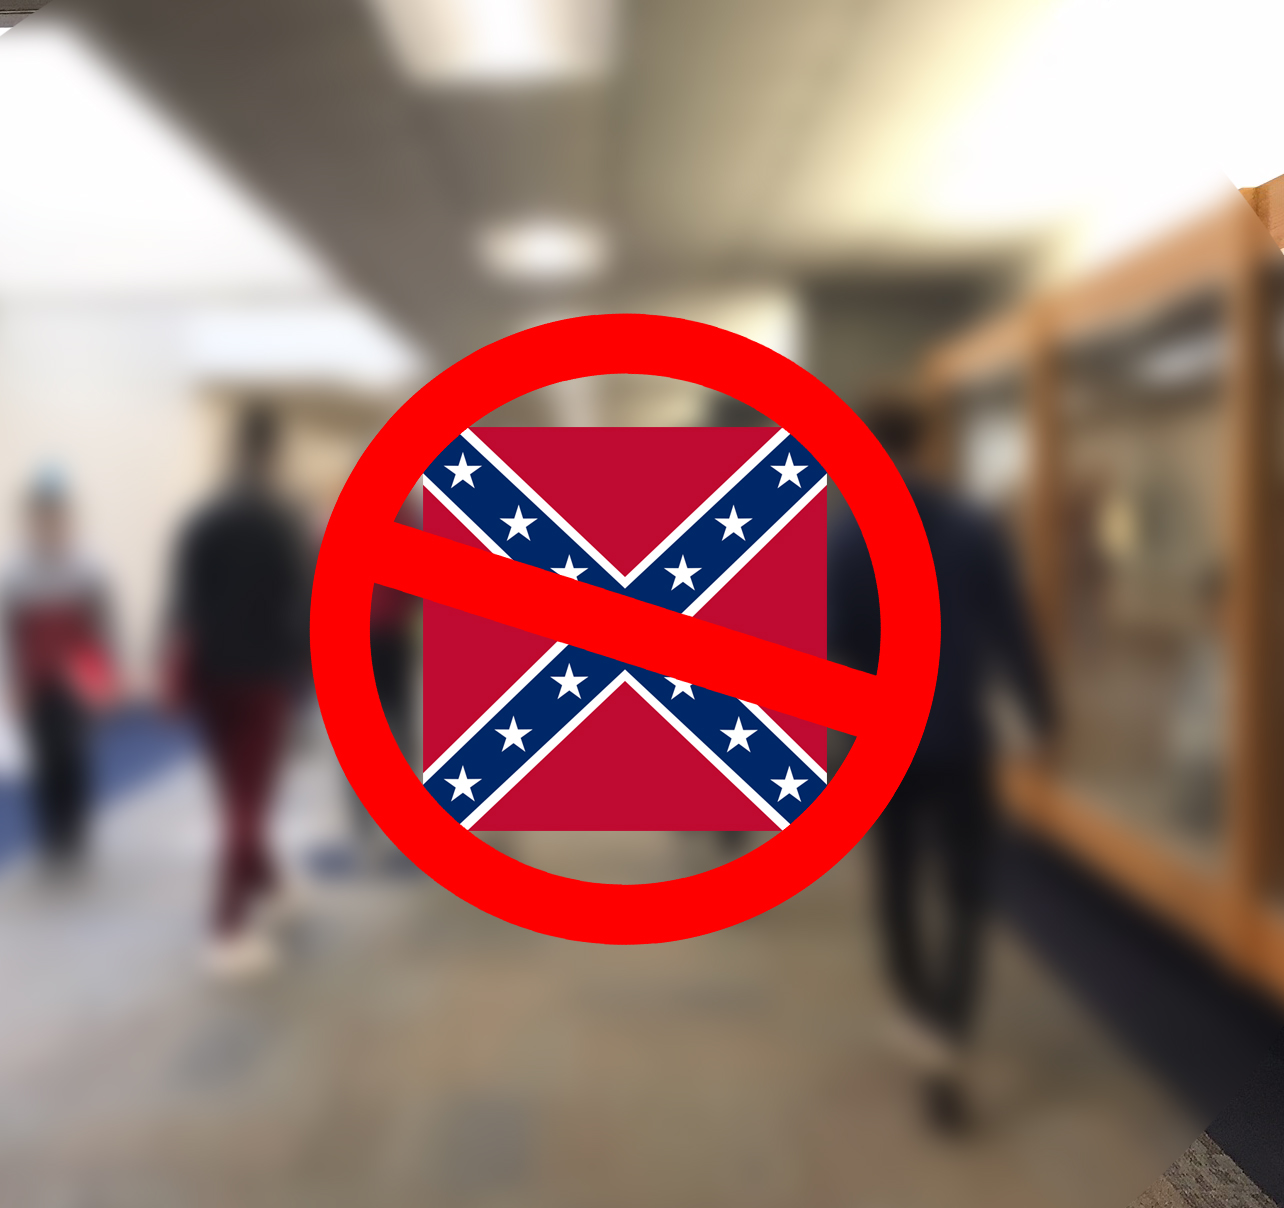 Several Pleasant Valley students recently complained to administration when a peer wore a sweatshirt with the Confederate flag to school, causing administrators to better define student rights.